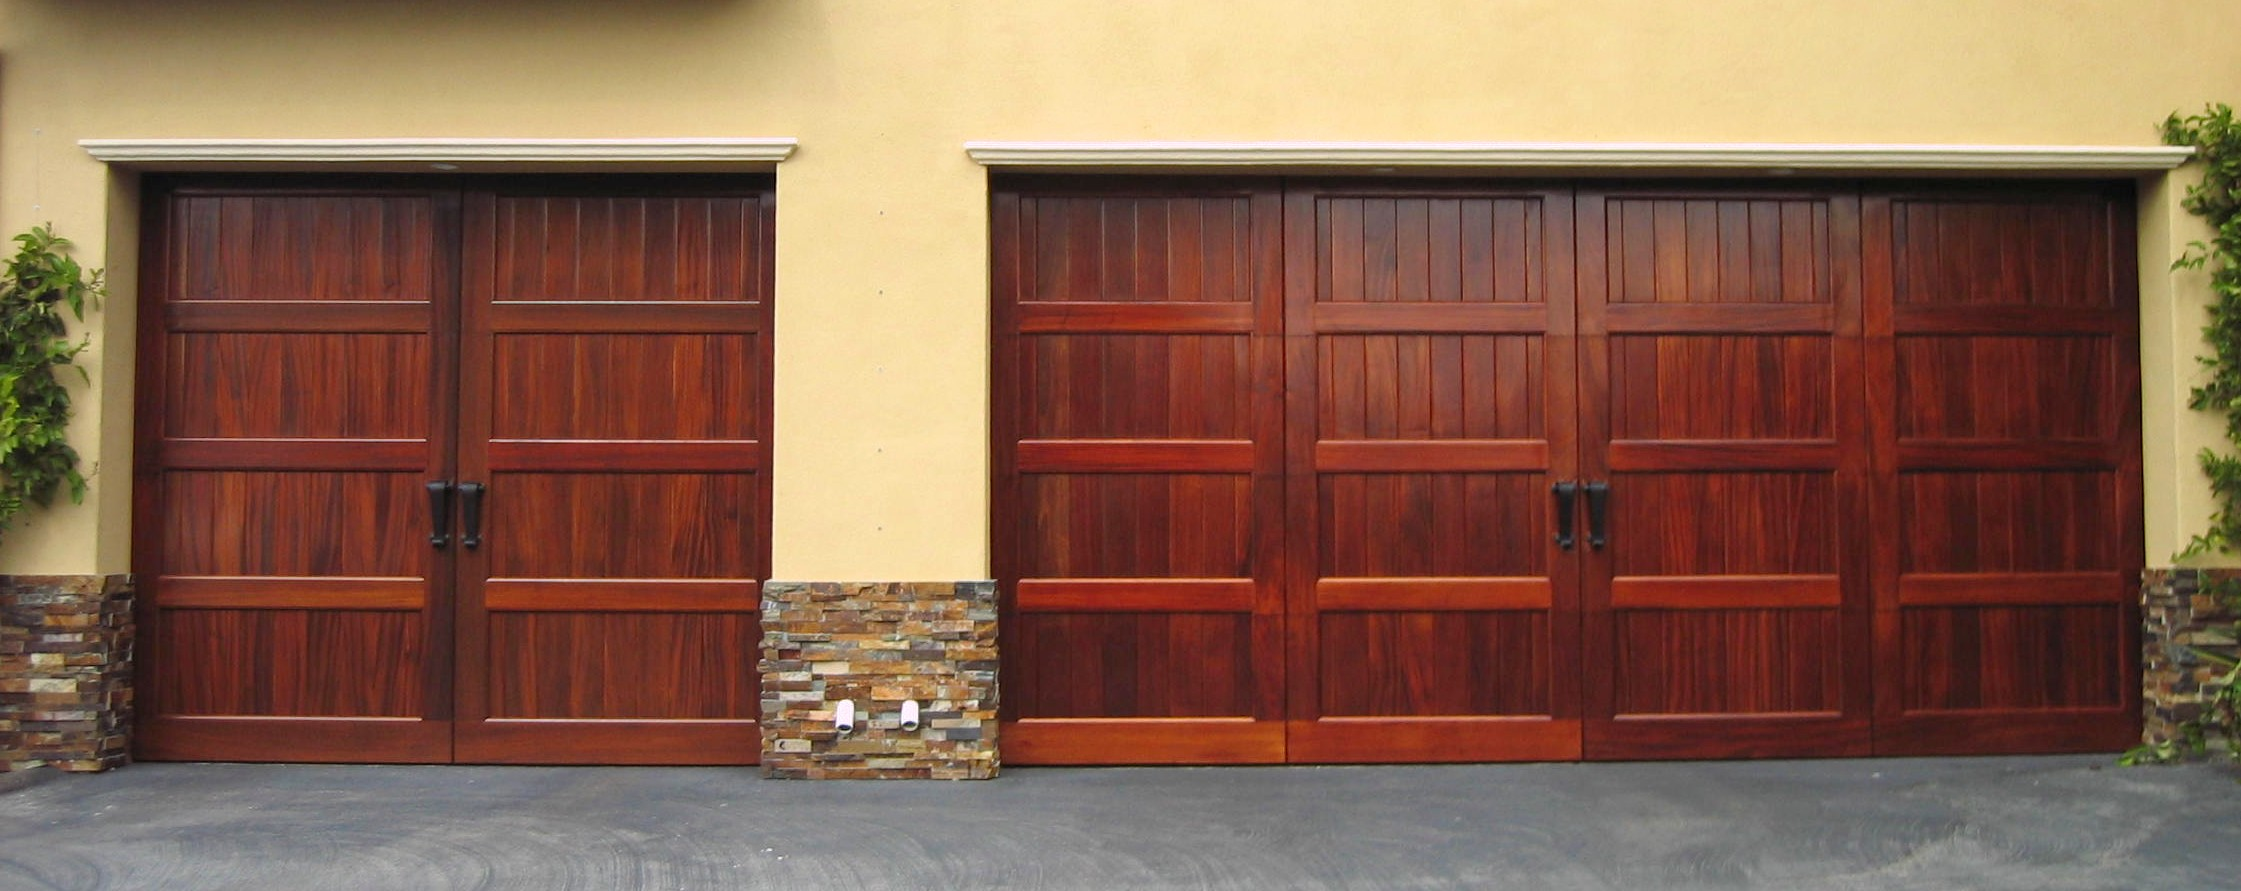 Wood Custom Garage Door San Diego By Radford Garage Doors